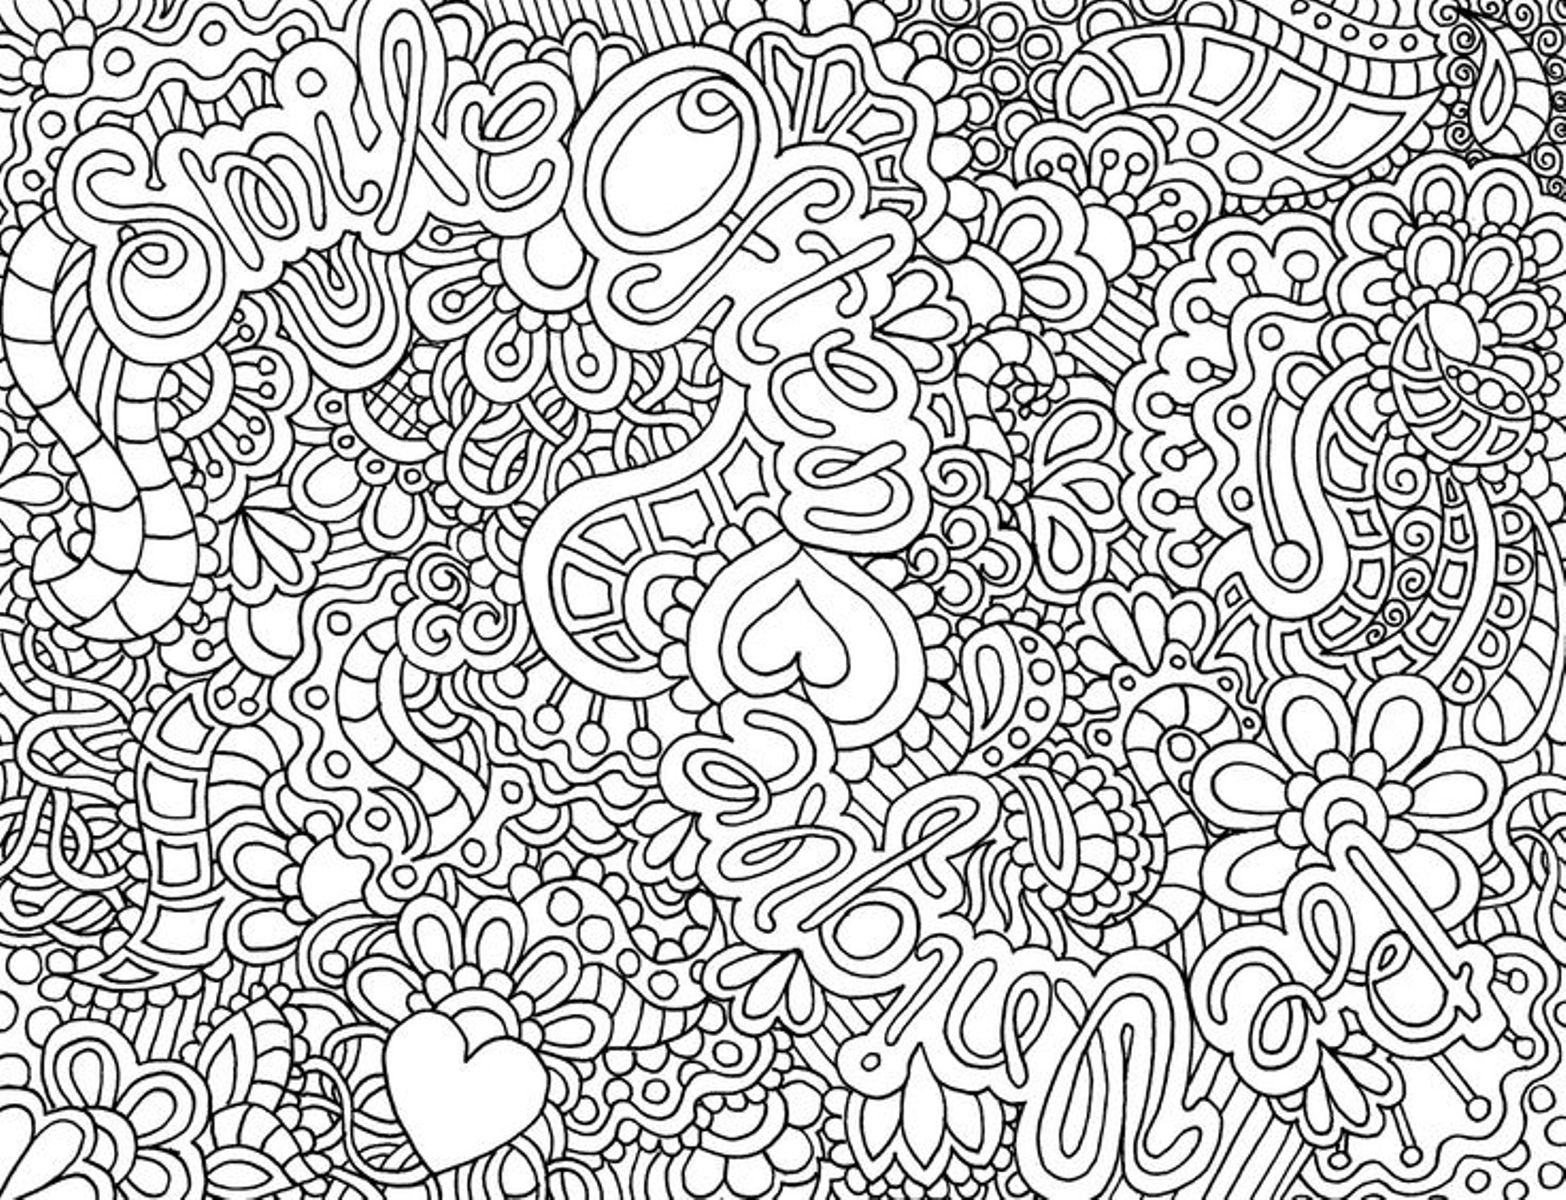 Difficult Hard Coloring Pages Printable | Only Coloring Pages